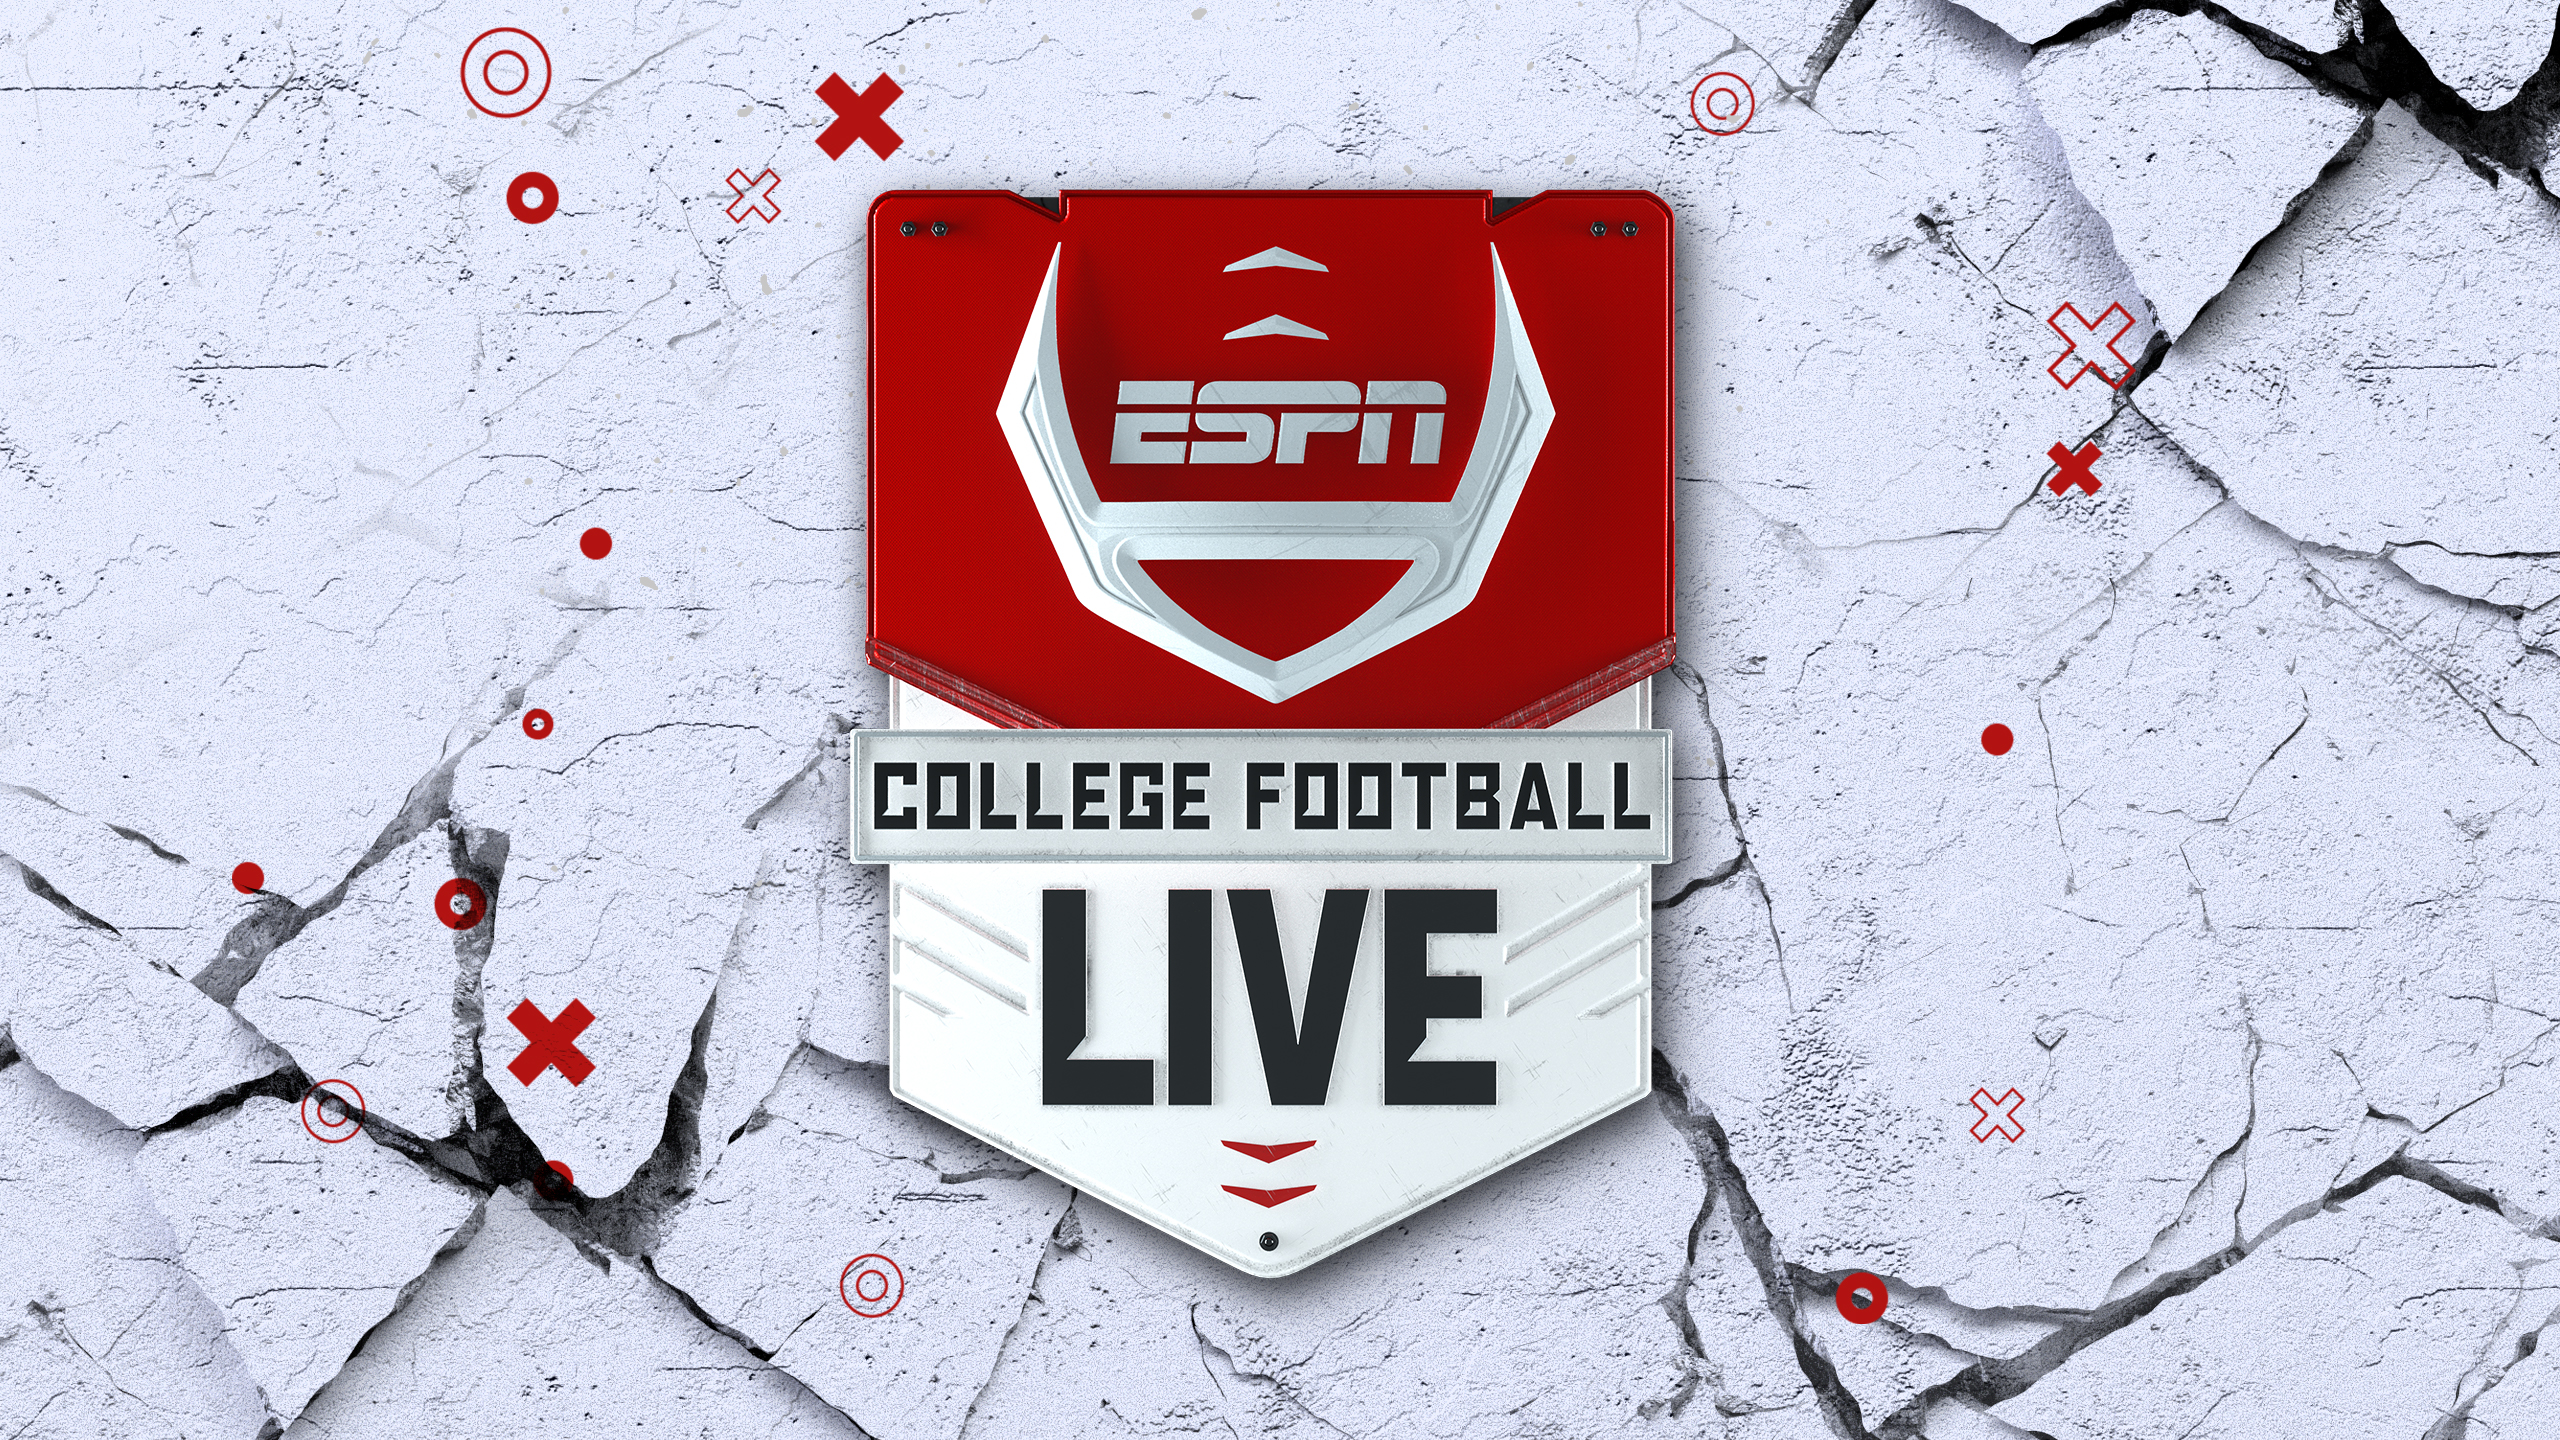 Fri, 11/16 - College Football Live